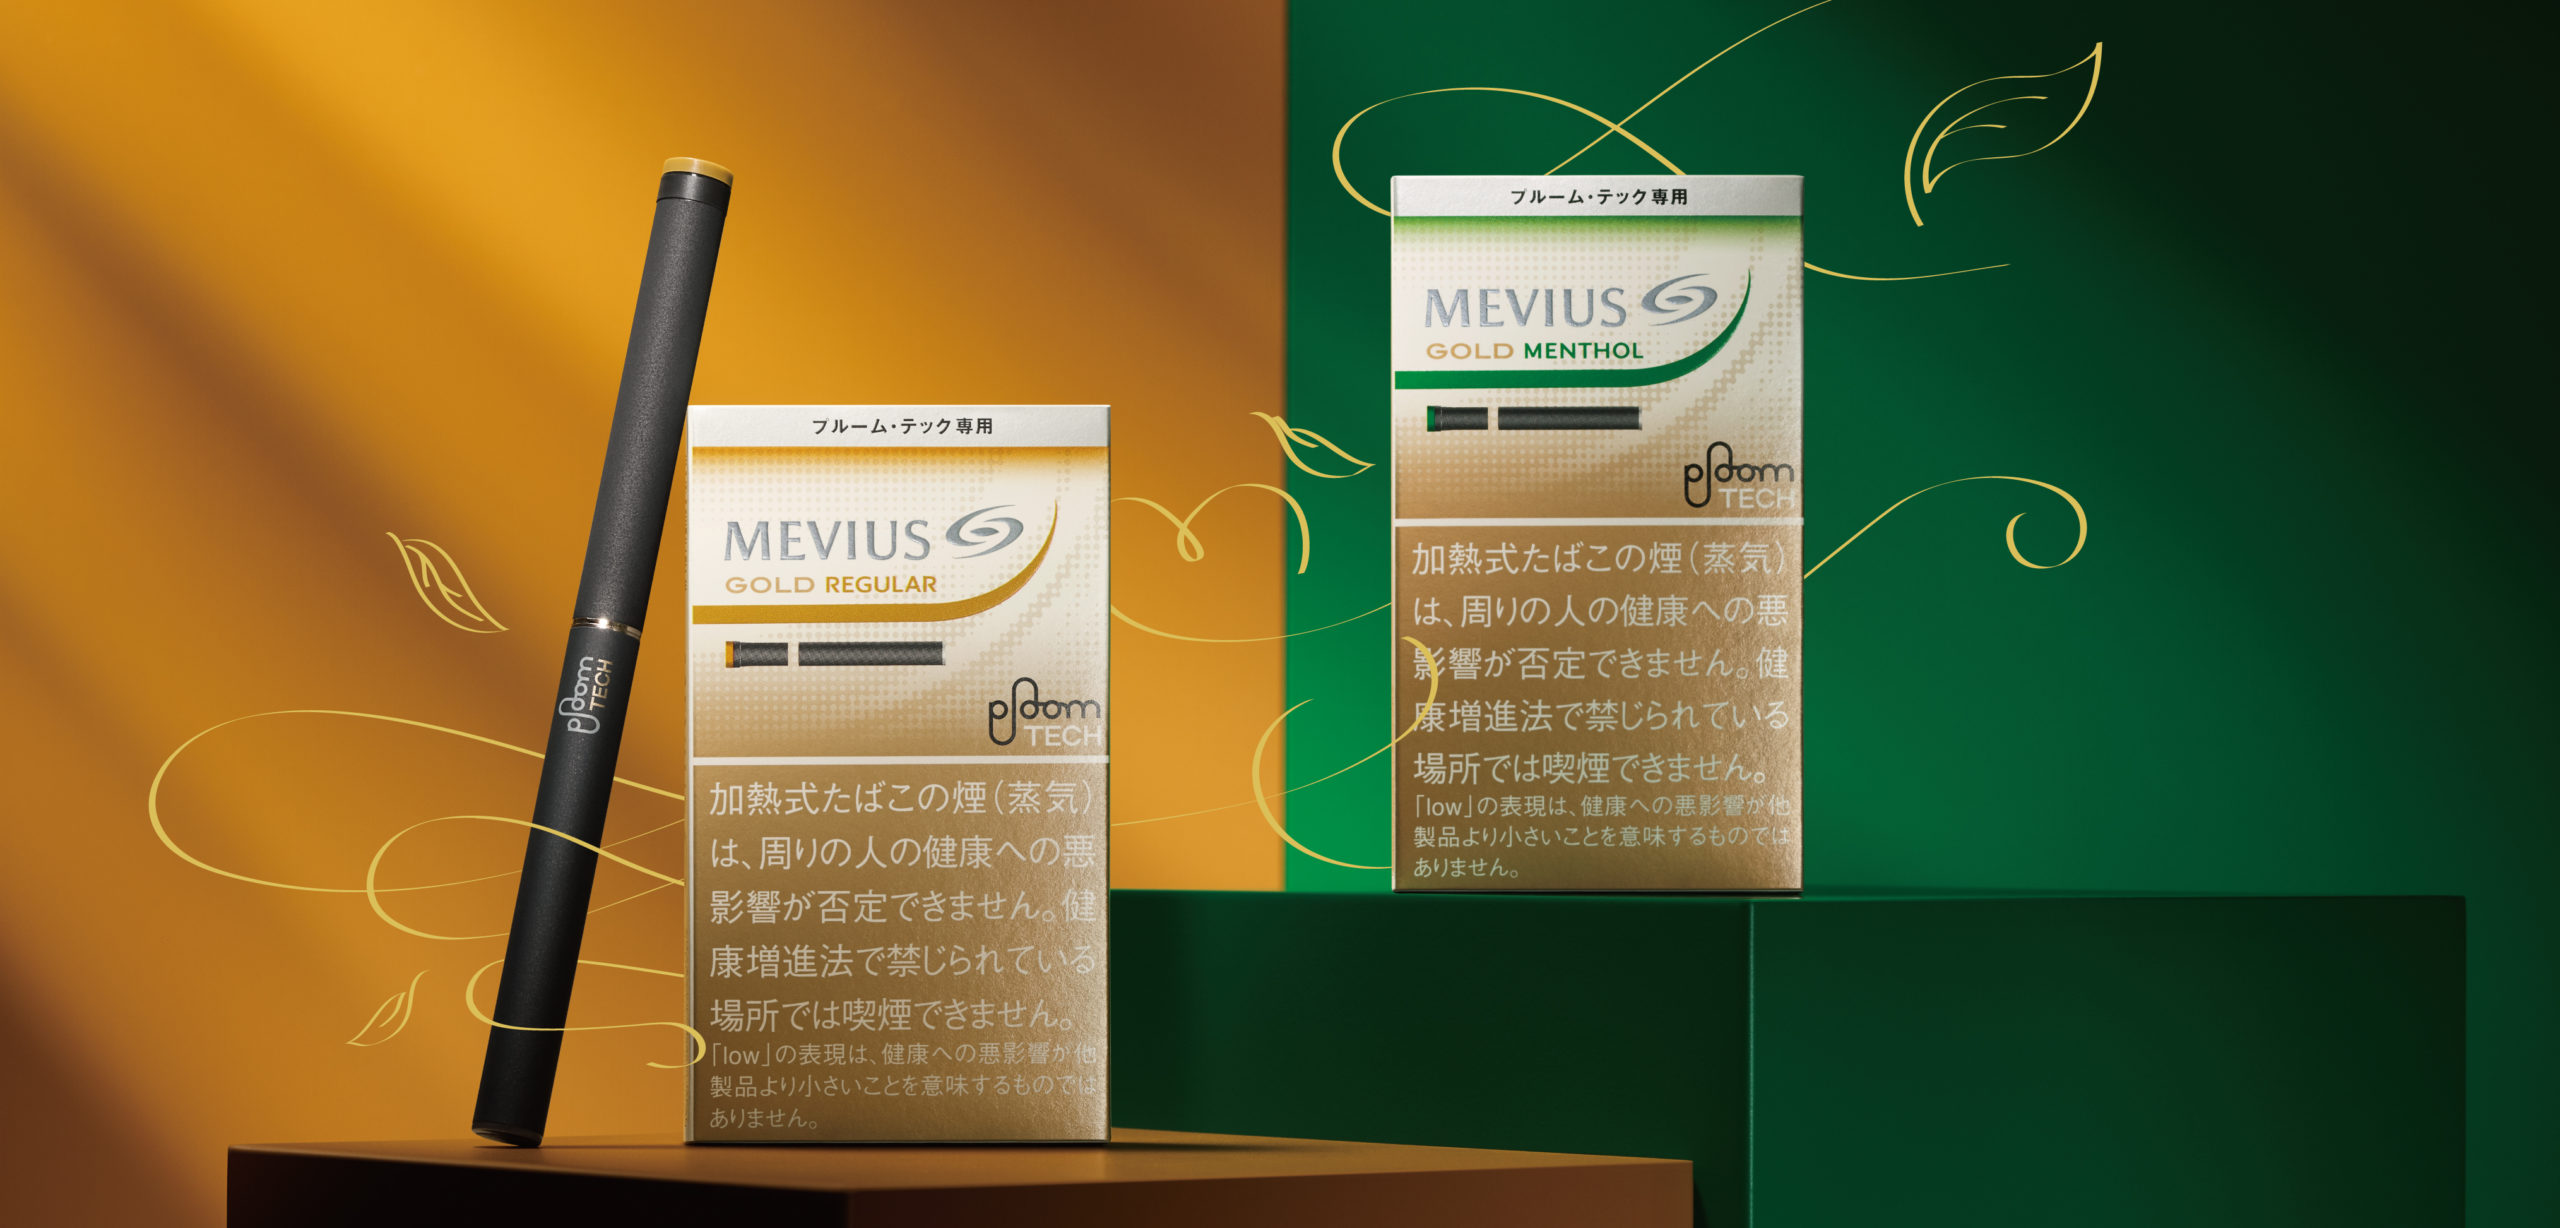 PloomTECH mevius gold regualr and menthol